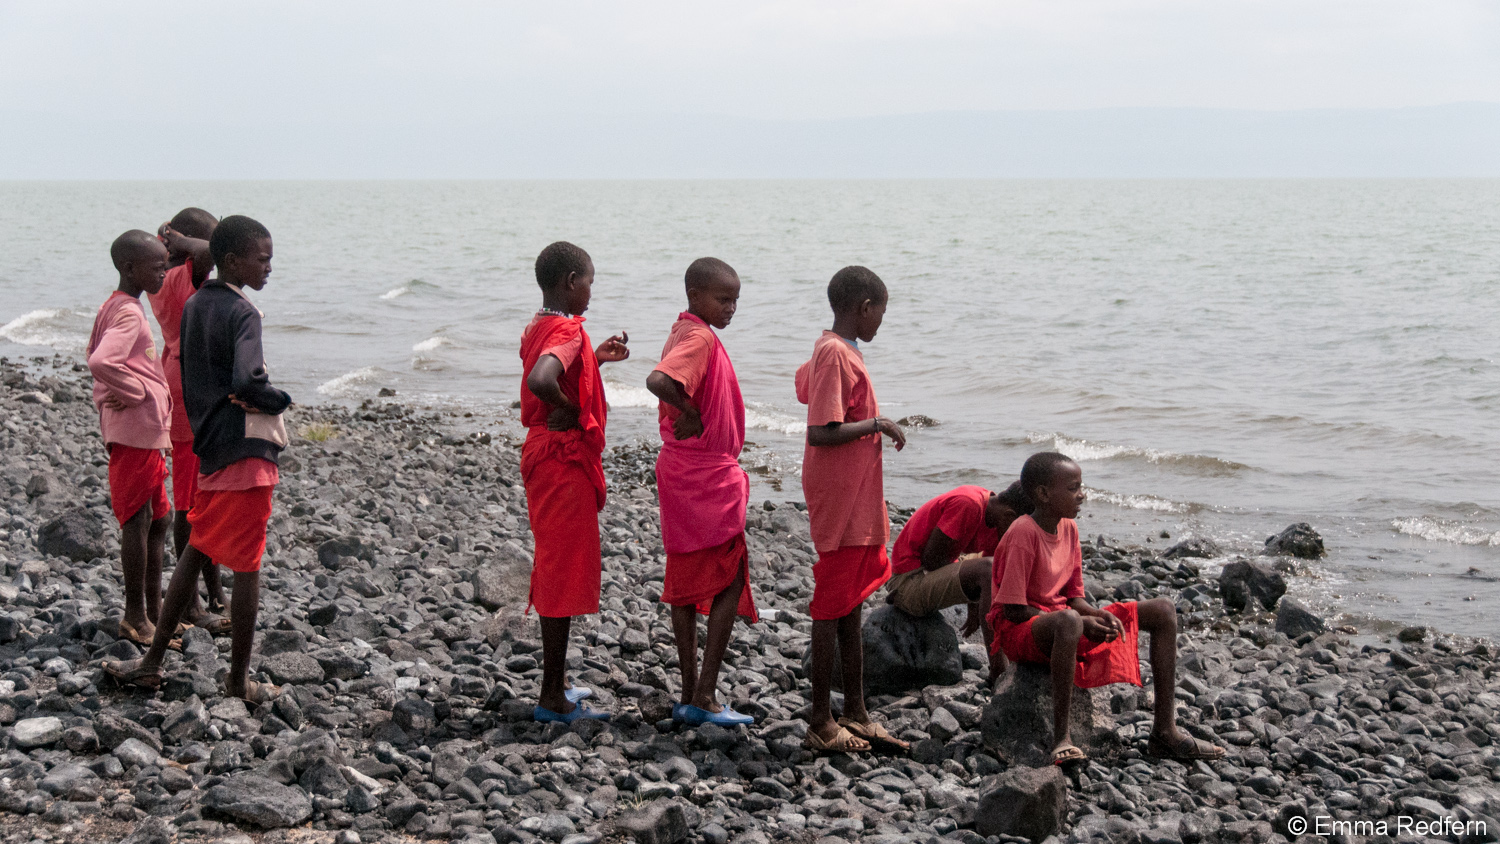 On the shores of Lake Turkana